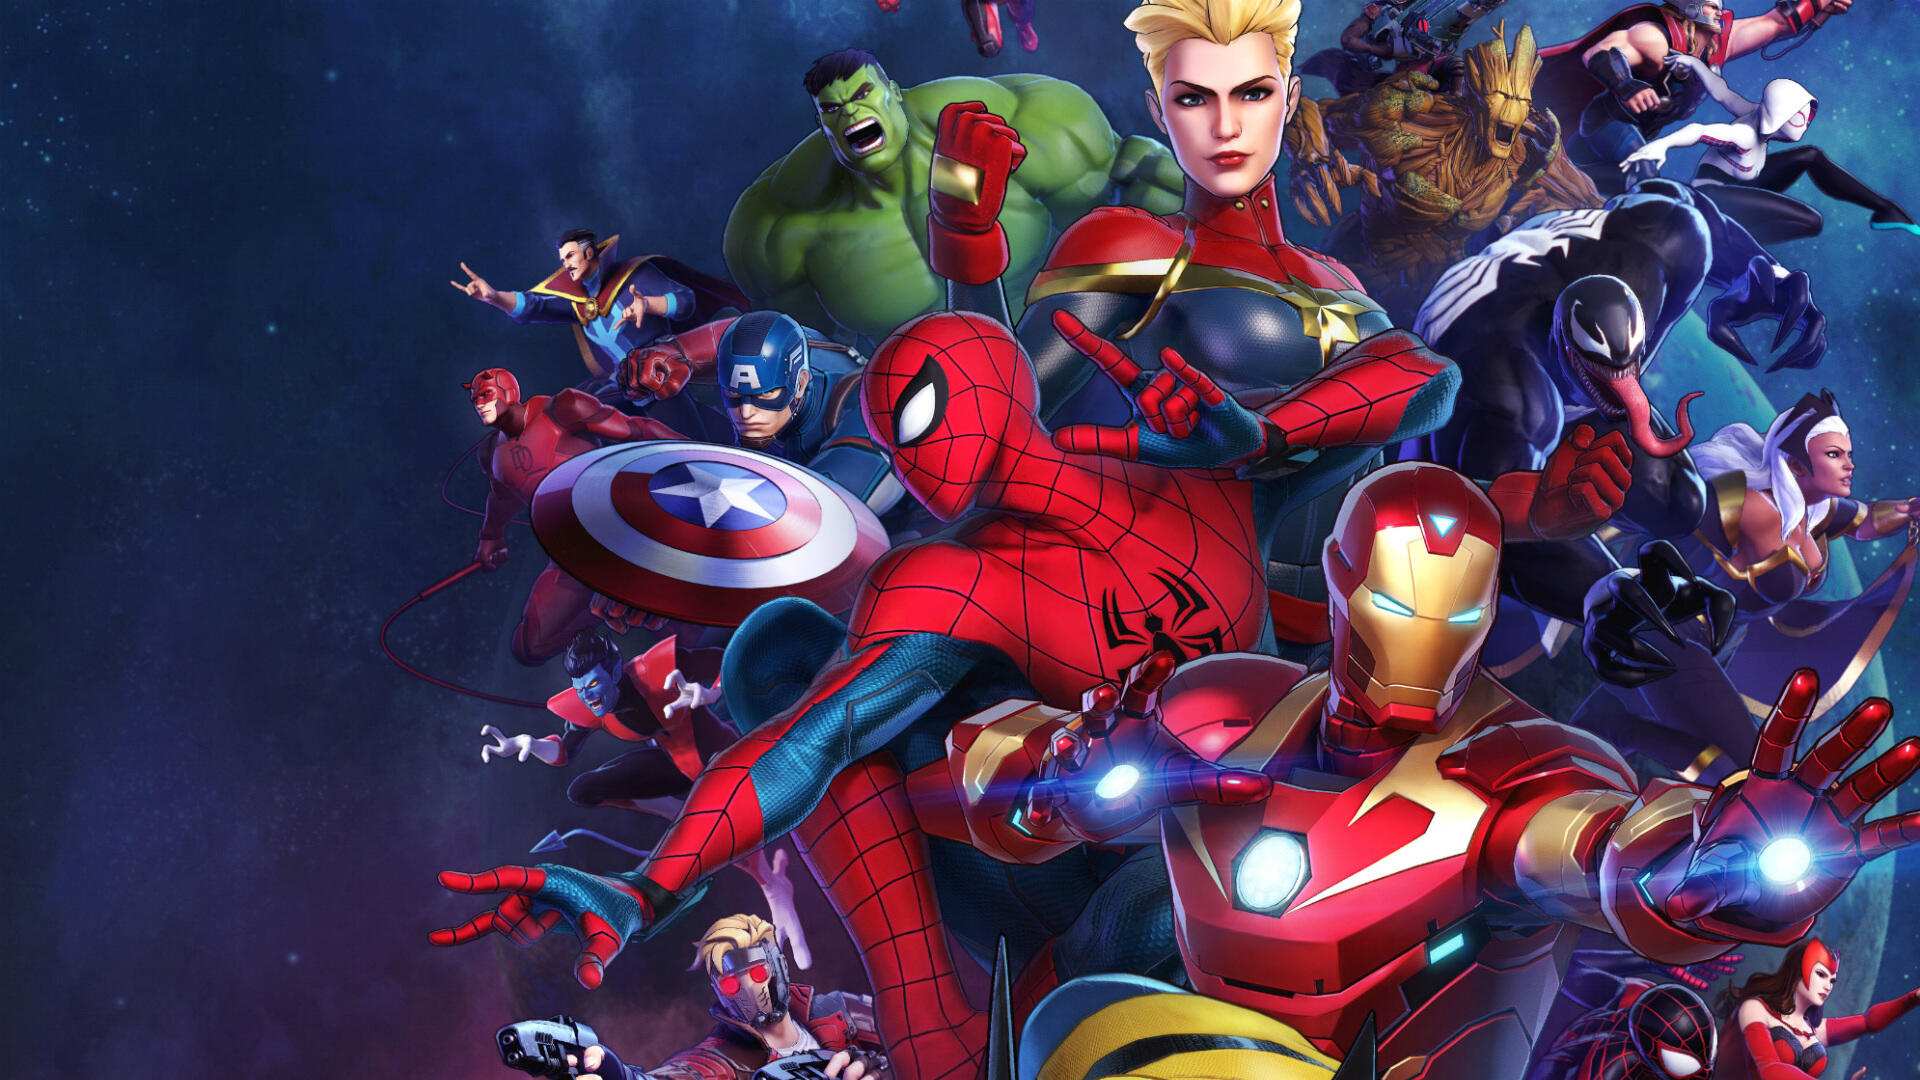 Marvel Ultimate Alliance 3 Costumes: How to Unlock and Change Outfits